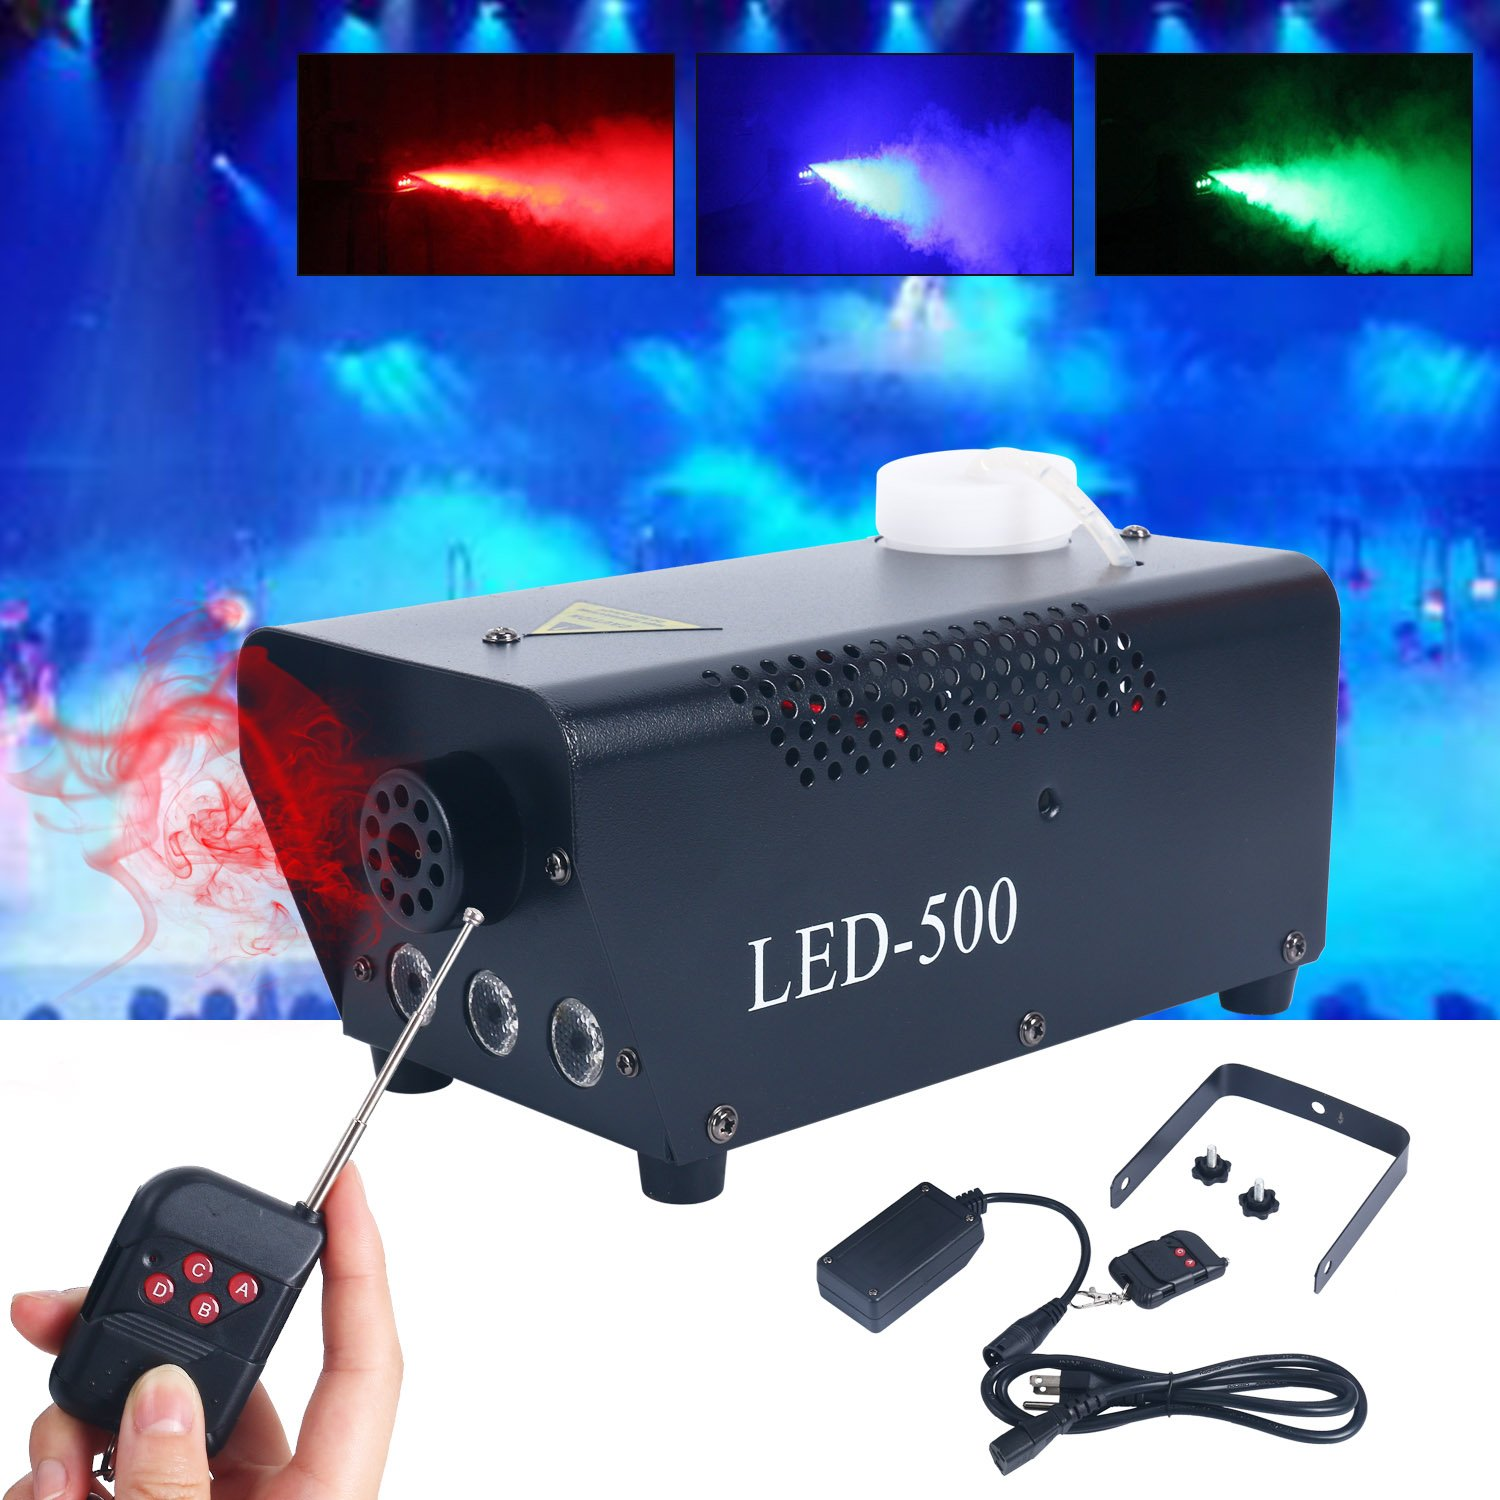 500W Wireless Remote Control Portable Christmas and Party Fog Machine with Built-In Colored LED Lights for Holidays, Weddings - impressive output Yae First Trading Co. Itd